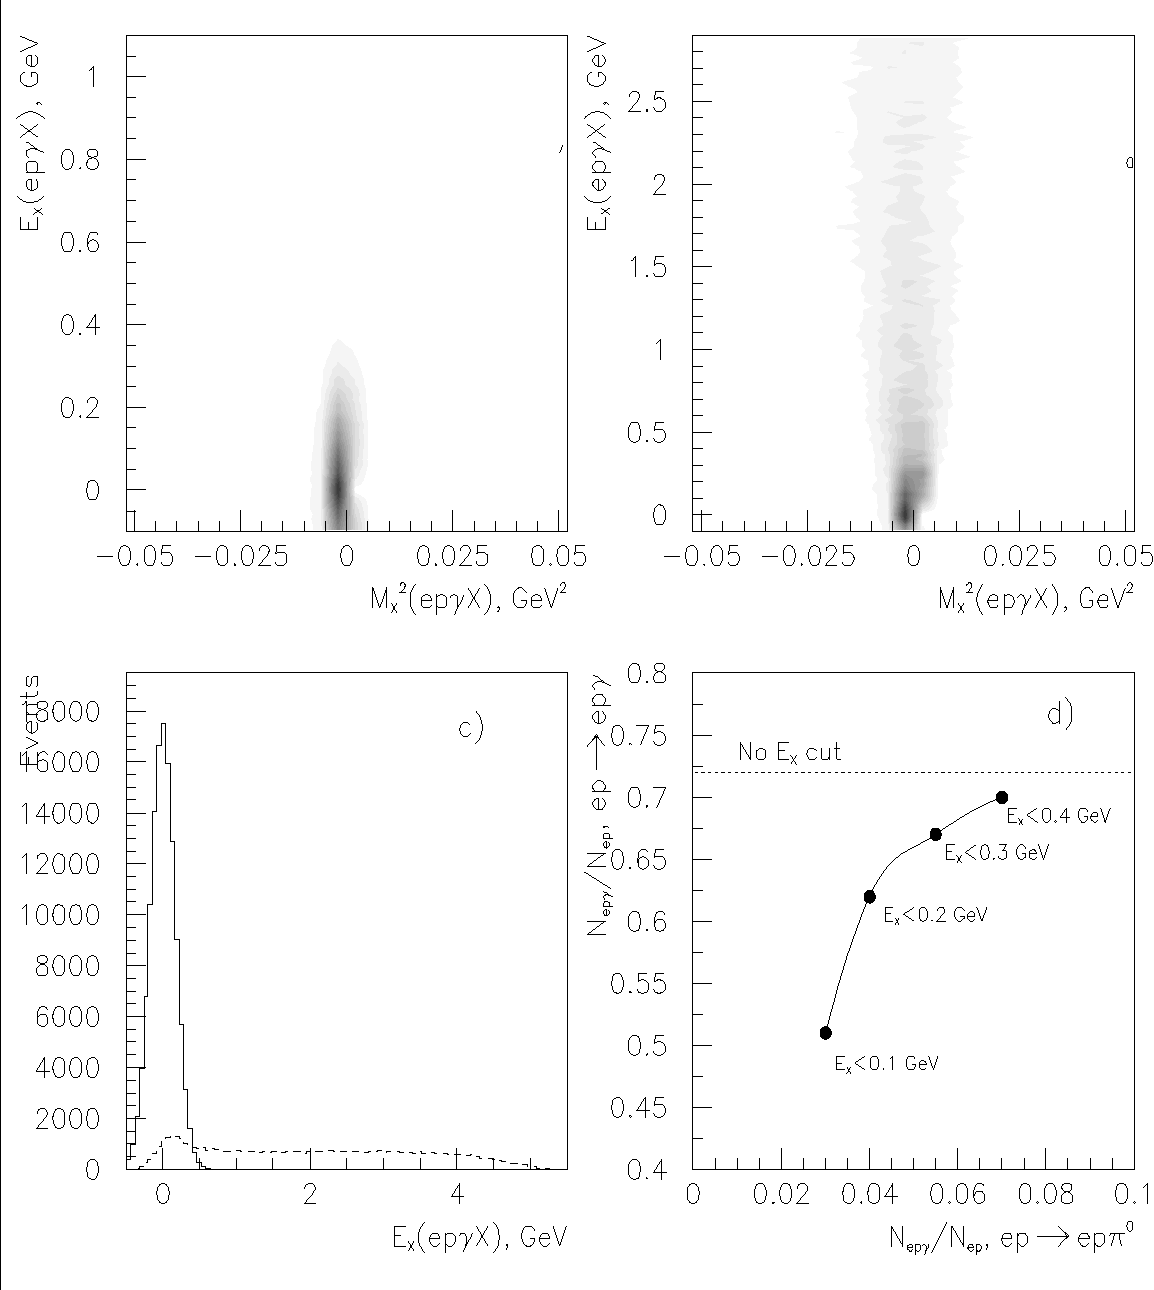 Figure 16: Separation of epγ and epγ(γ) events using the missing mass and missing energy method. The top panels show the missing energy from epγ (left) and epπ0 (right) events if only one photon is detected versus missing mass for epγX. The projection of both graphs is shown at the bottom left. The π0 contamination is a small fraction under the single photon peak. The bottom right panel shows the probability for a π0 to be misidentified as a single photon on the horizontal axis and the single photon detection probability on the vertical axis a function of the missing energy cut.